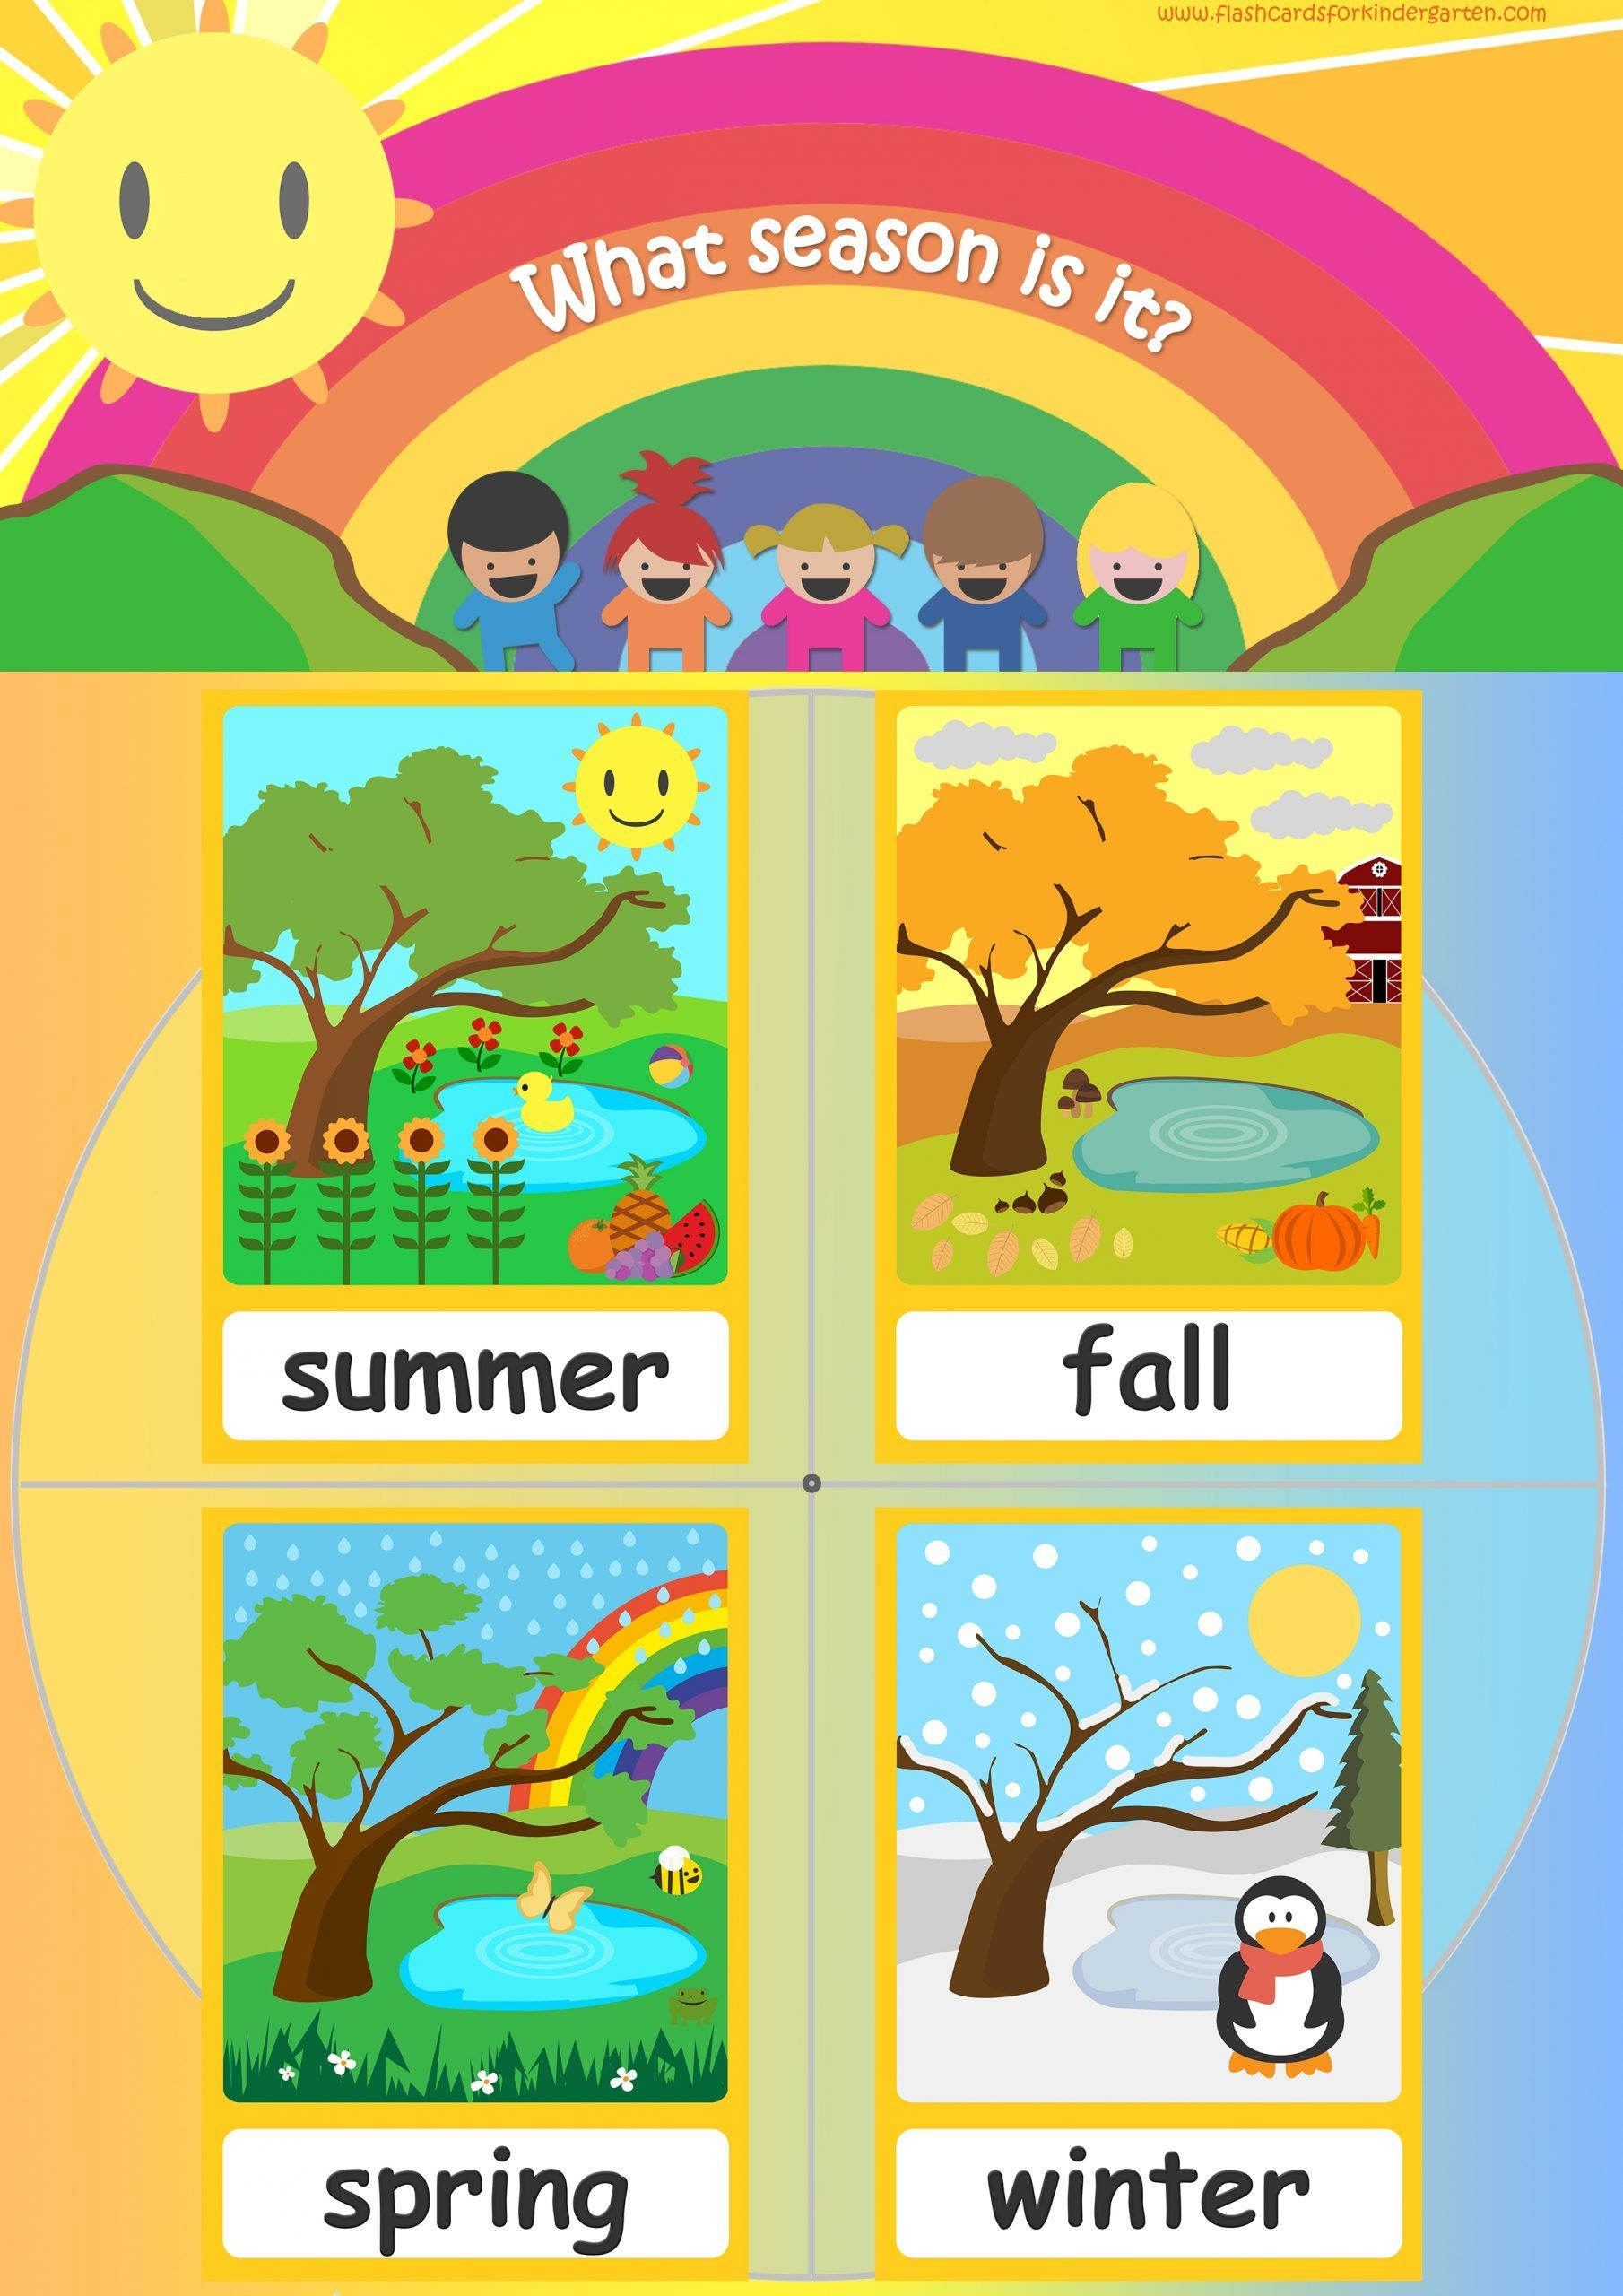 seasons flashcards teach seasons free flashcards & posters!